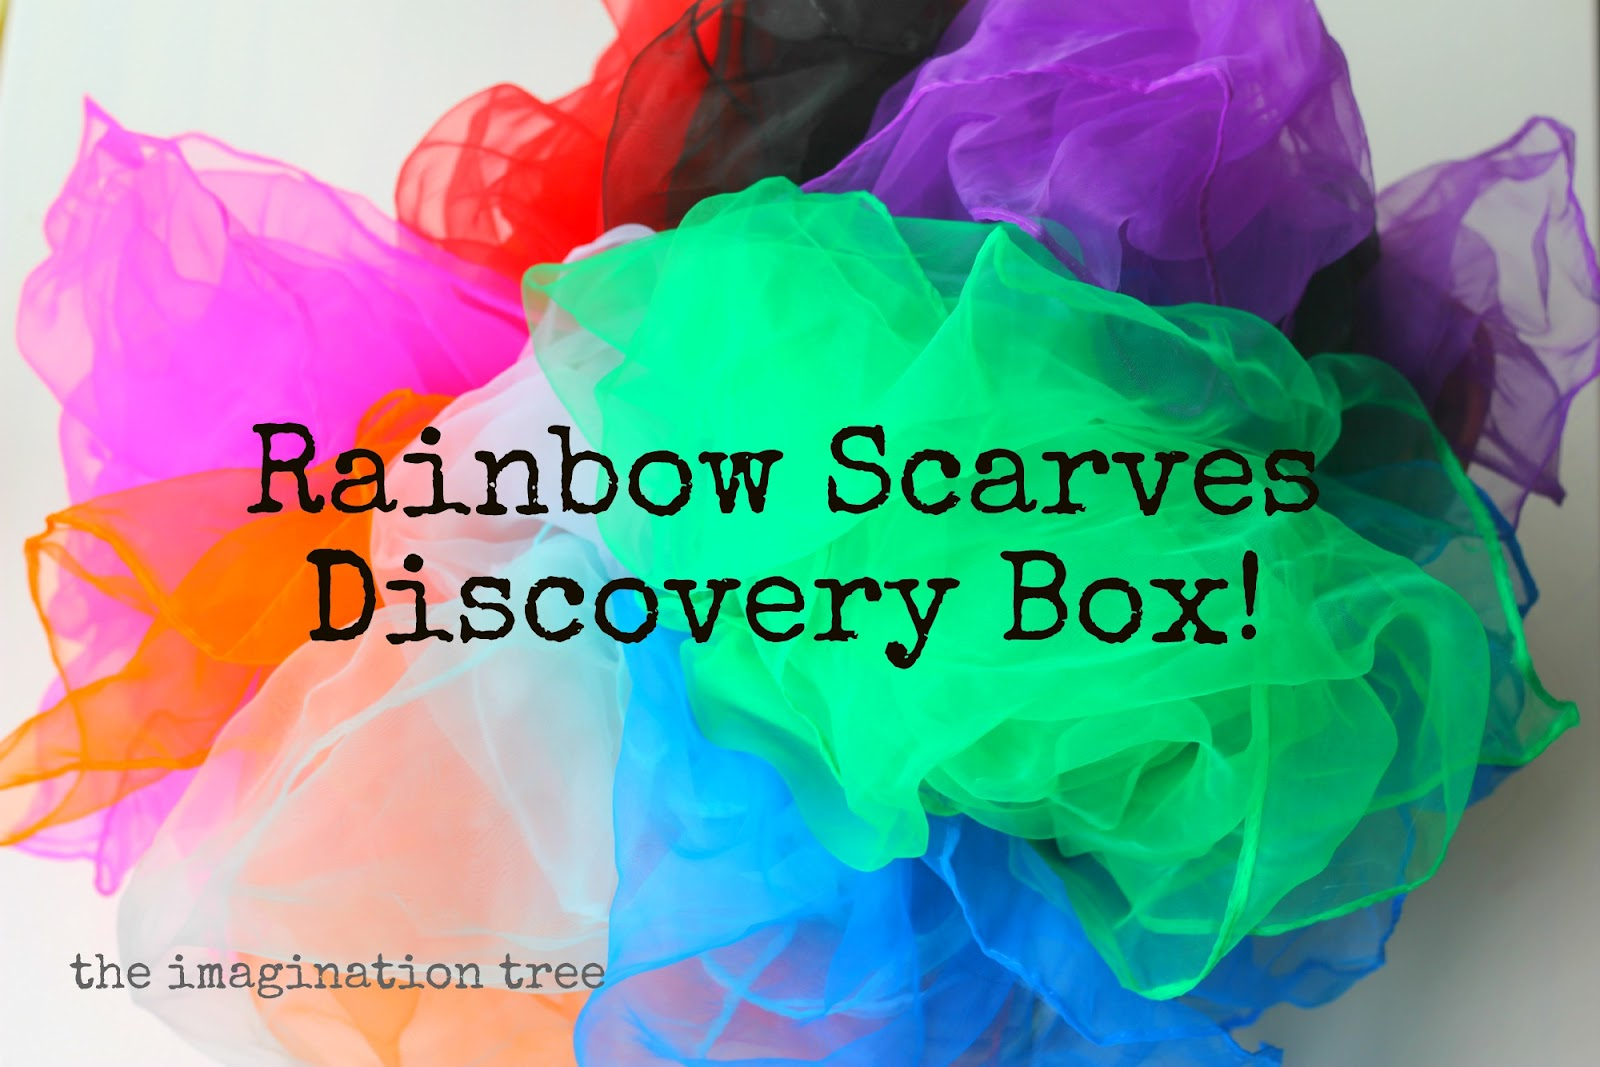 Discovery Box 14: Rainbow Scarves - The Imagination Tree